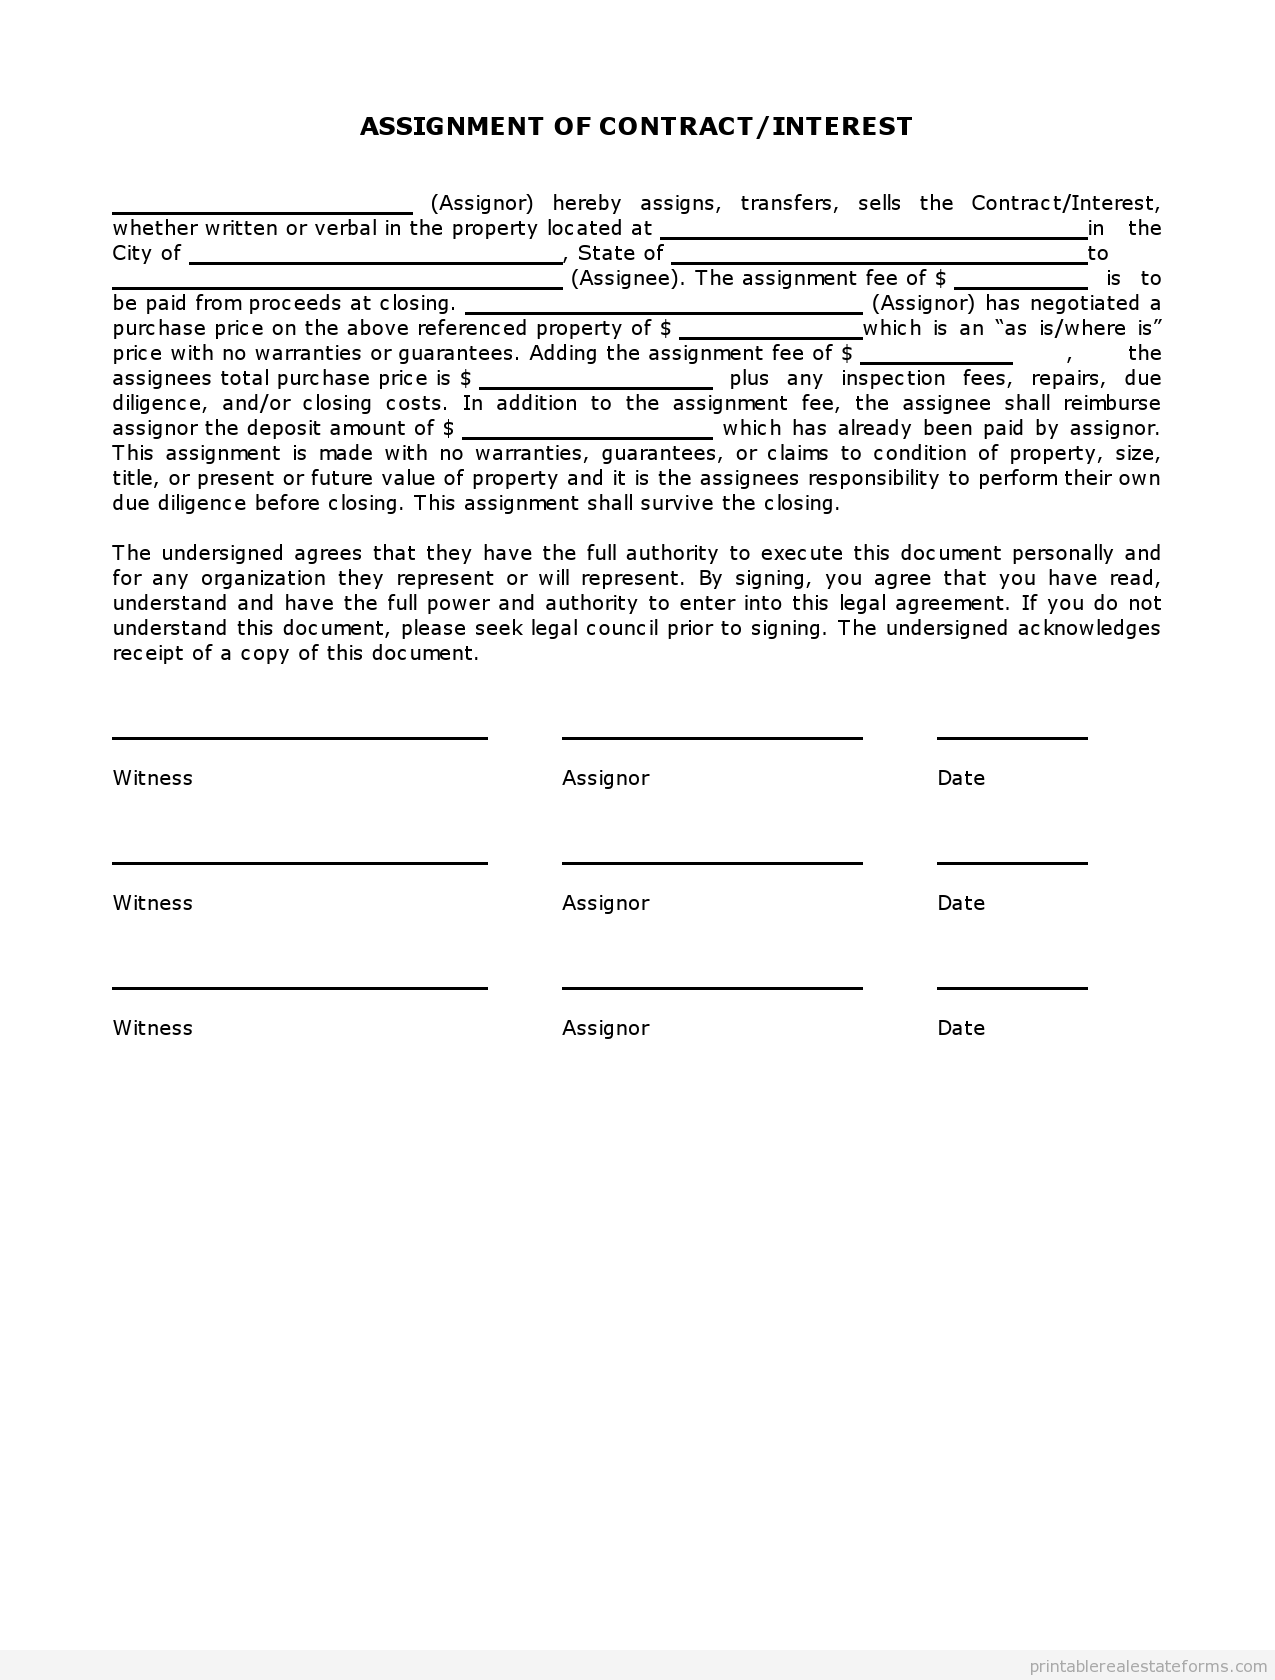 Sample Printable Exclusive Listing Contract Form  Printable Real